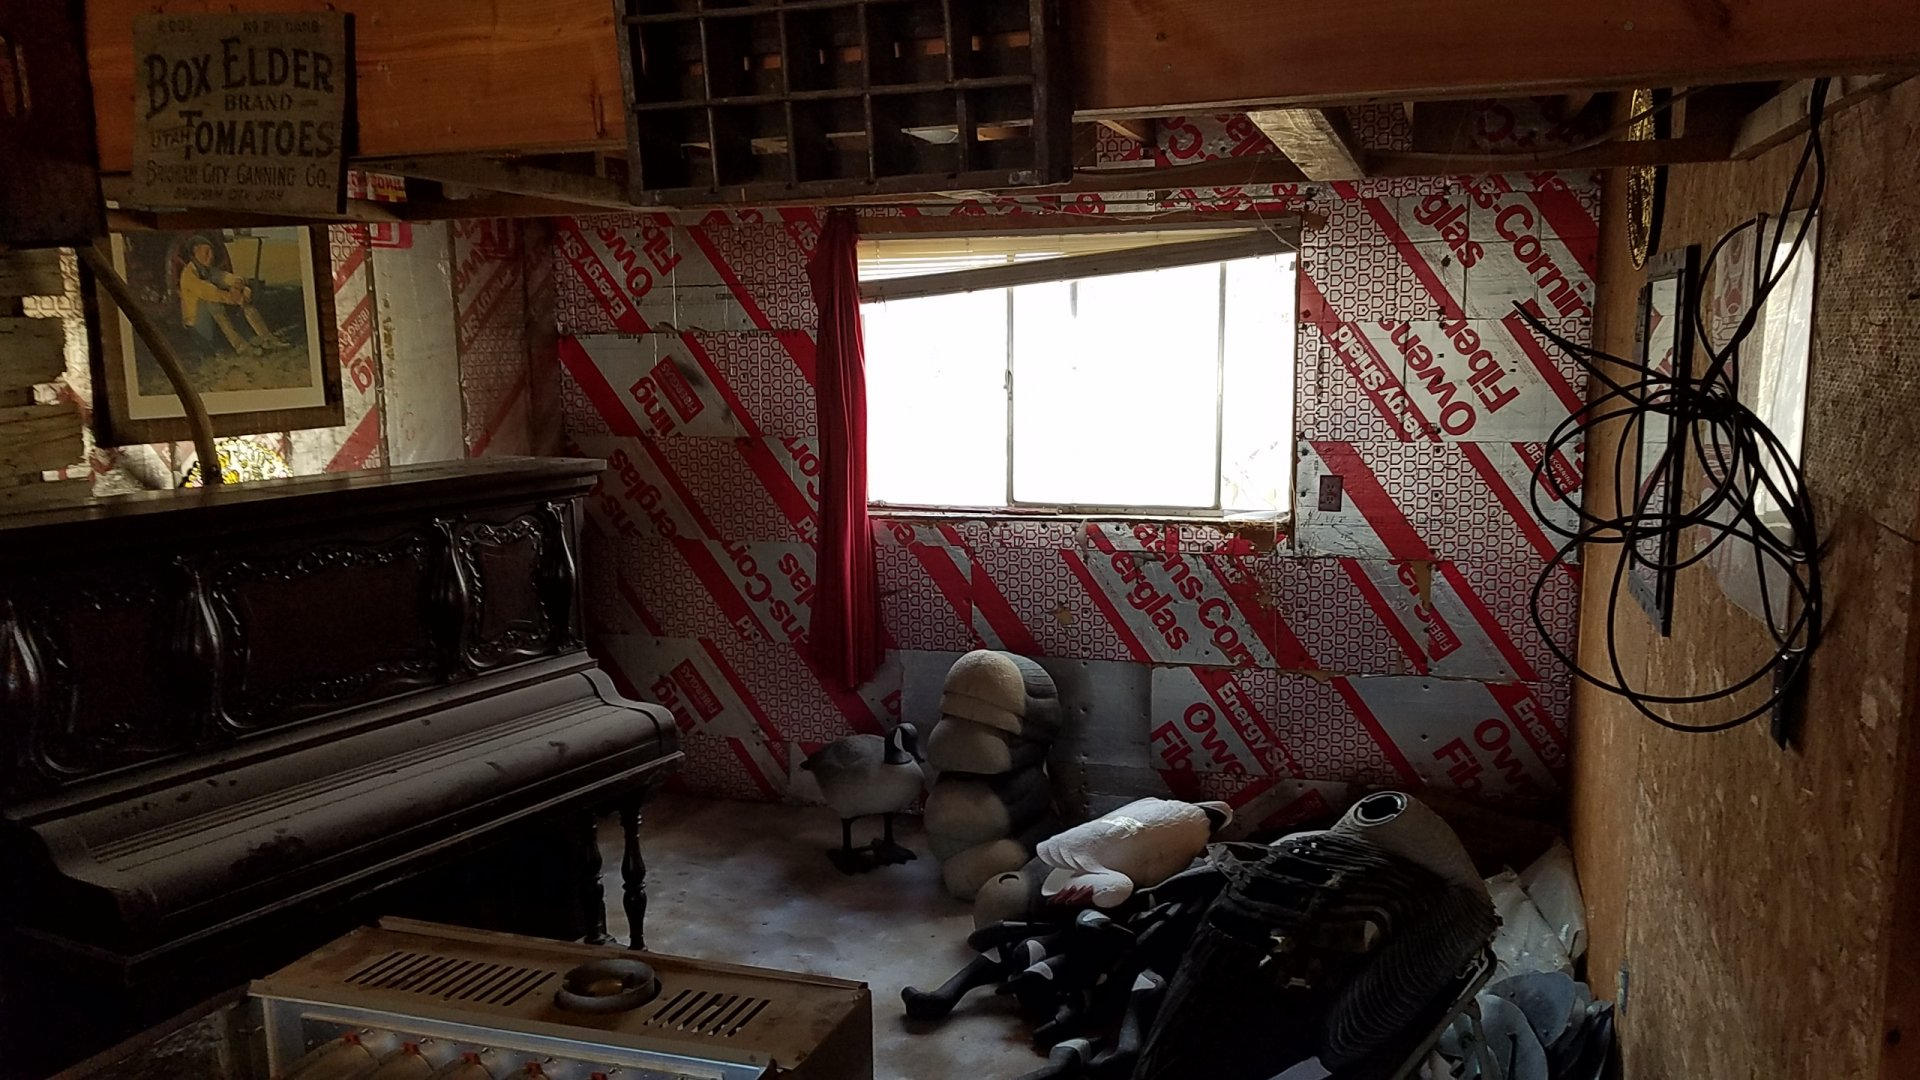 selling rental property that has been trashed